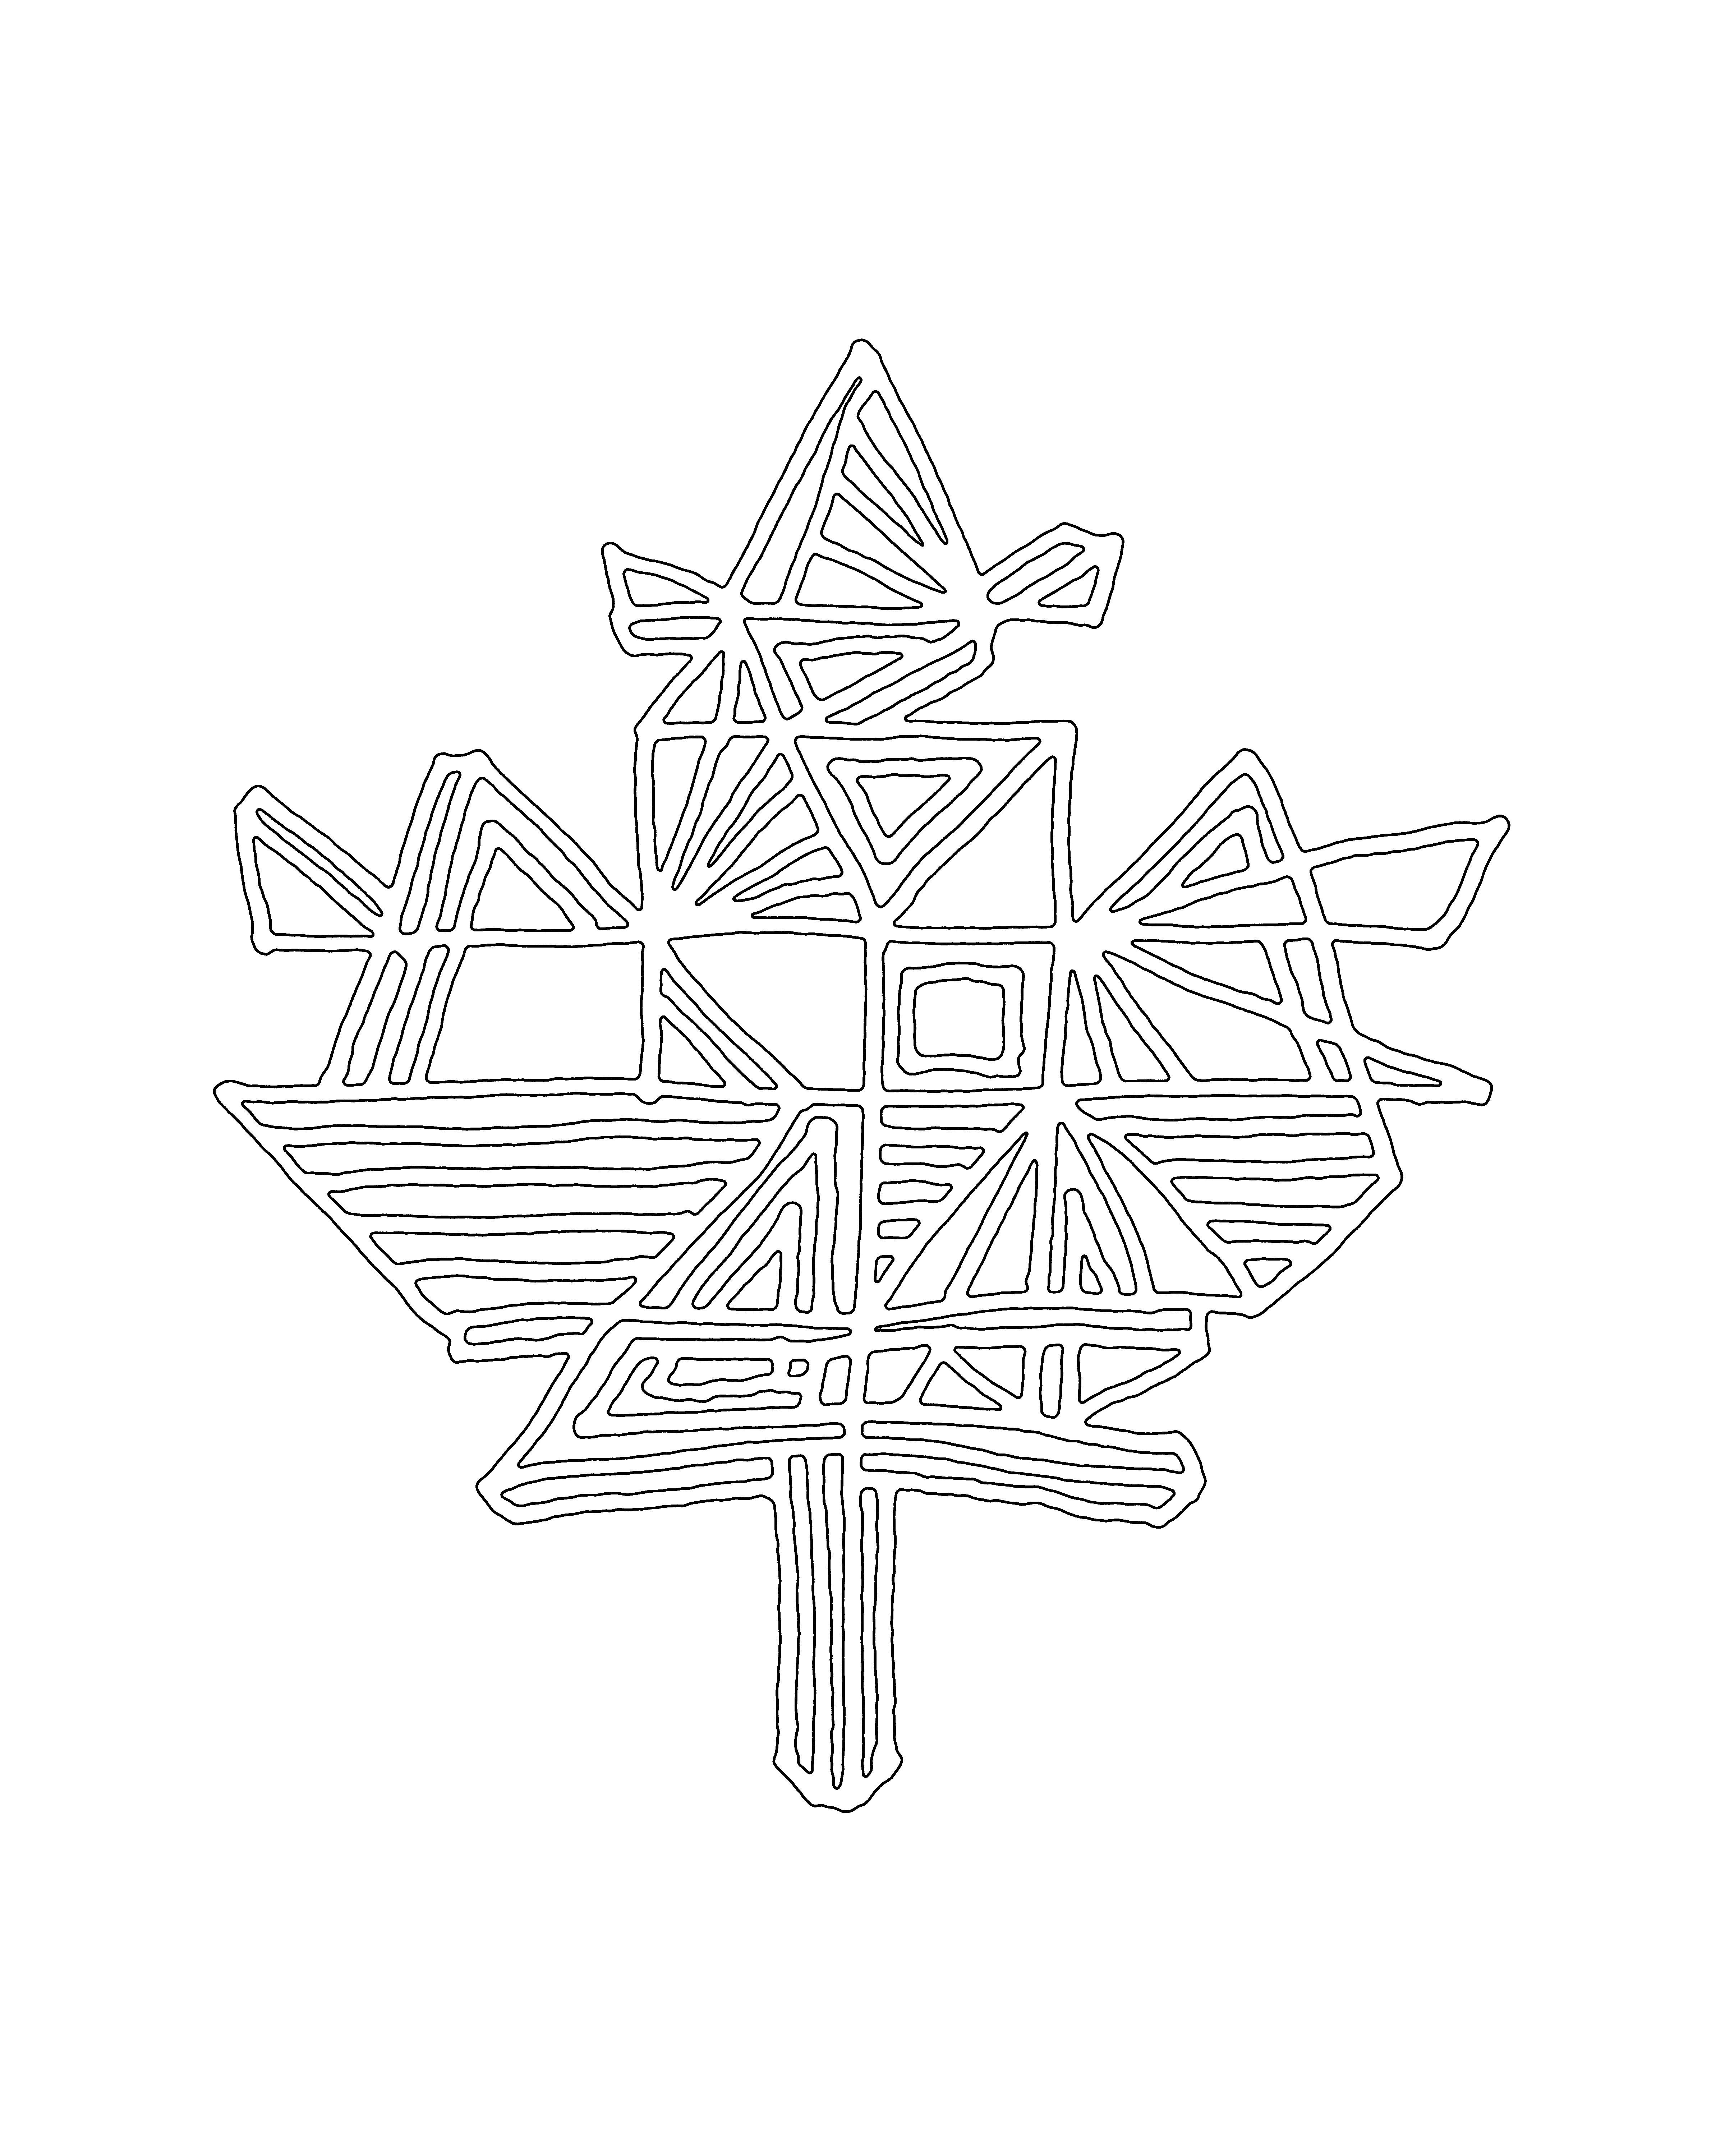 Canadian Maple Leaf Colouring Page 5853